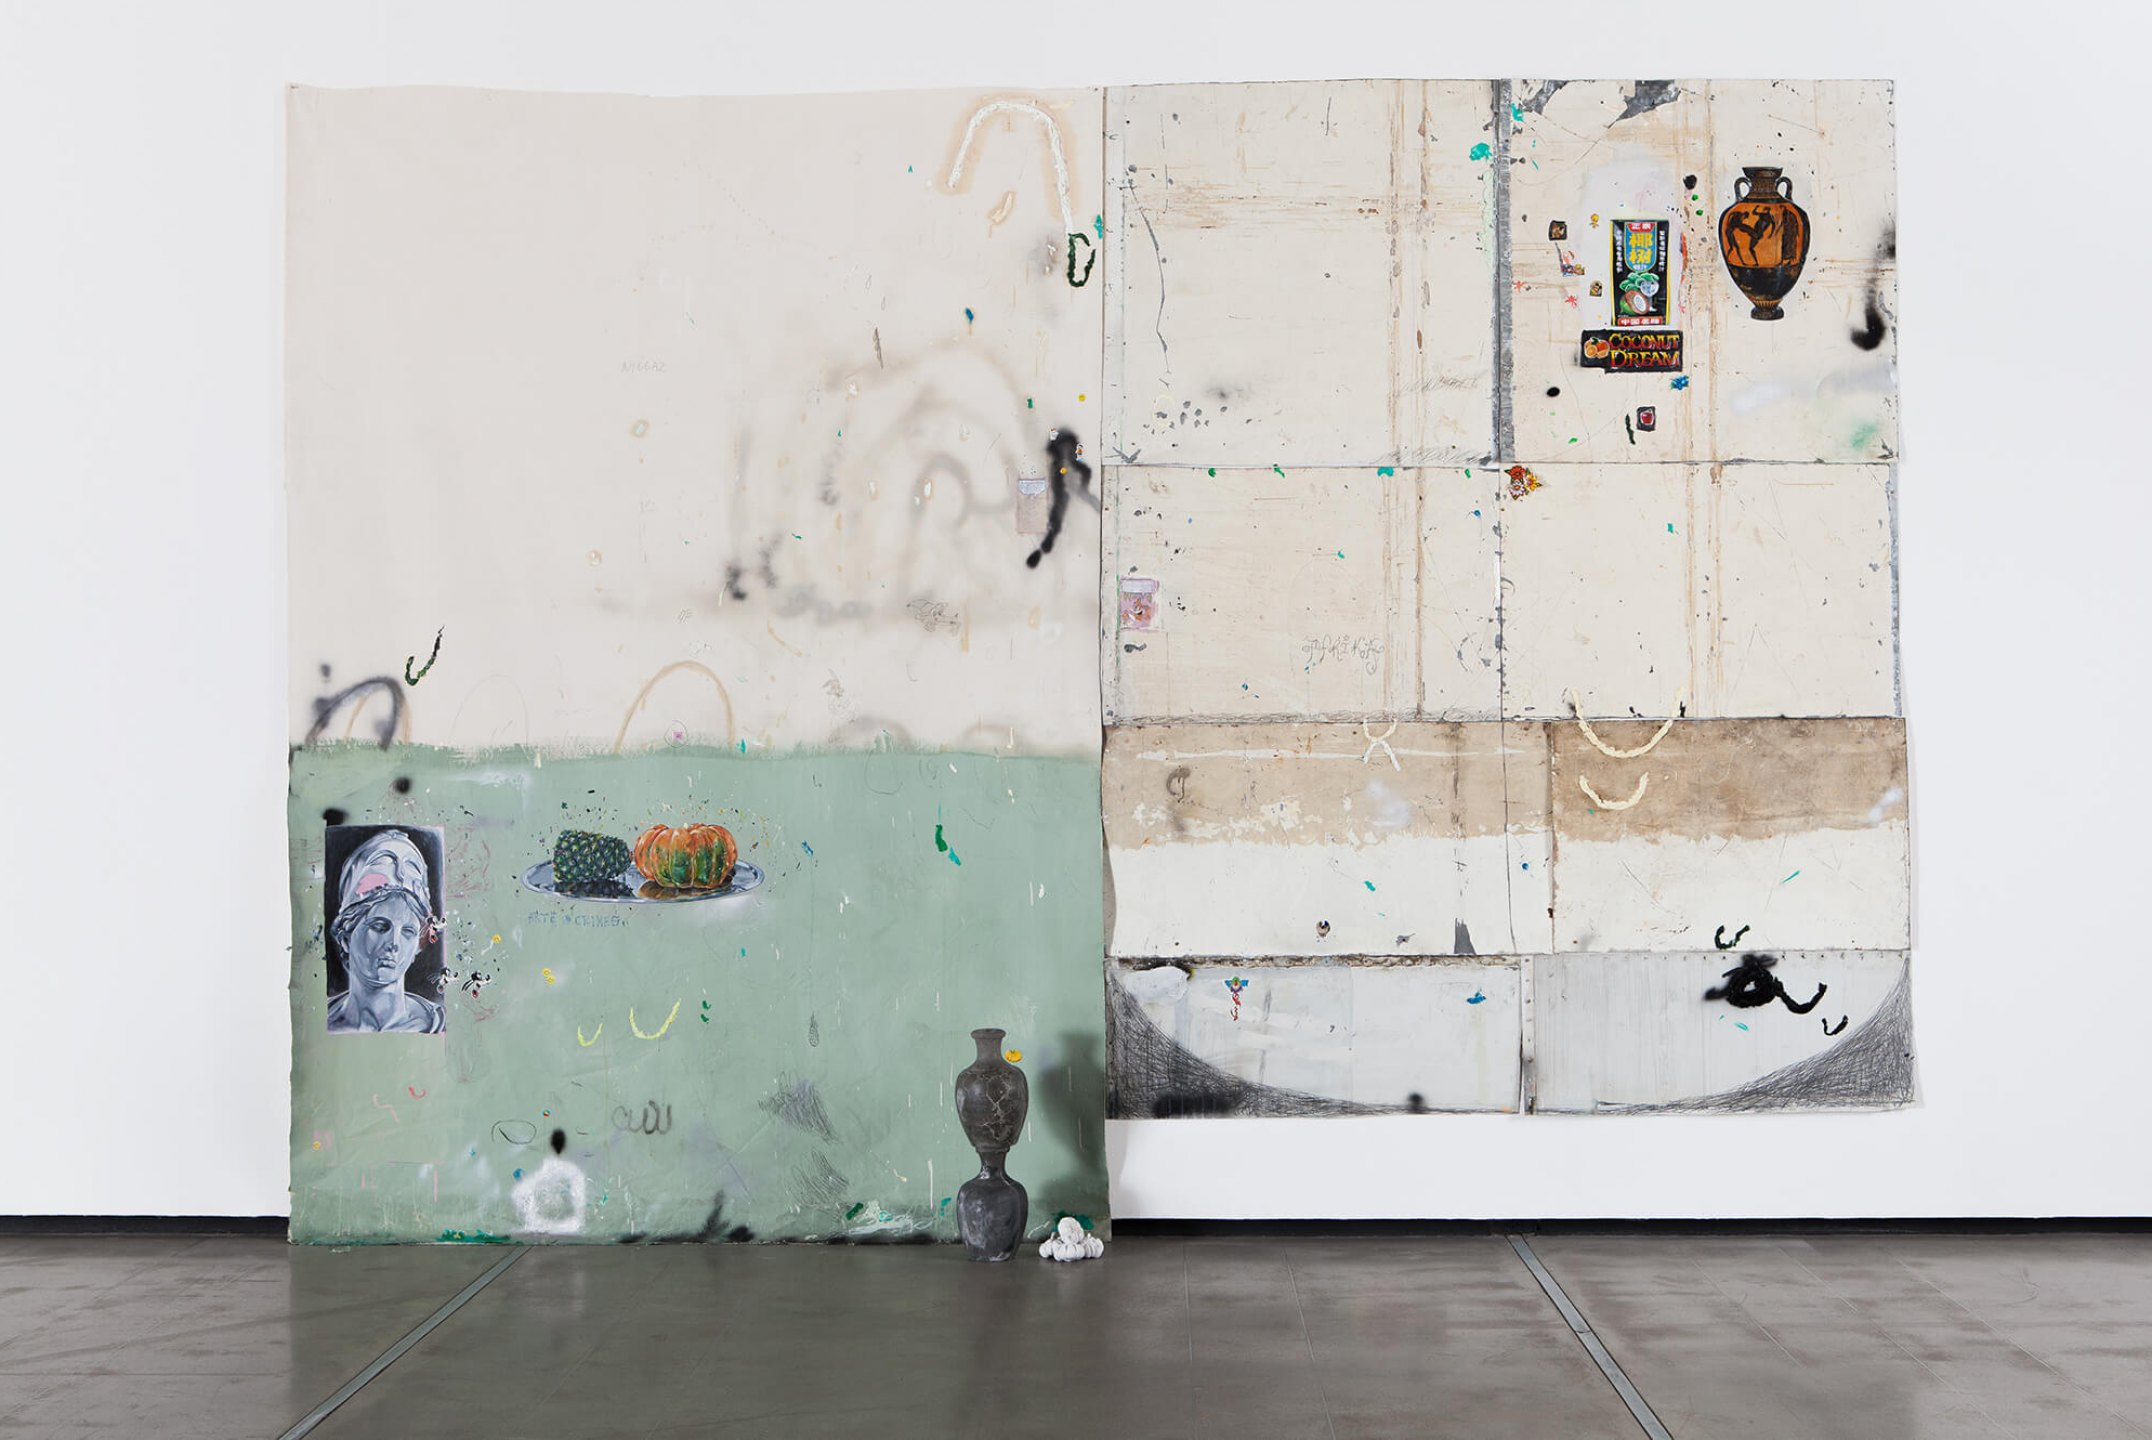 Paulo Nimer Pjota, <em>Entre a filosofia e o crime, part. II</em>, 2015, acrylic, oil, pen, pencil on iron plate, cotton, paper and concrete, 300 × 420 cm - Mendes Wood DM